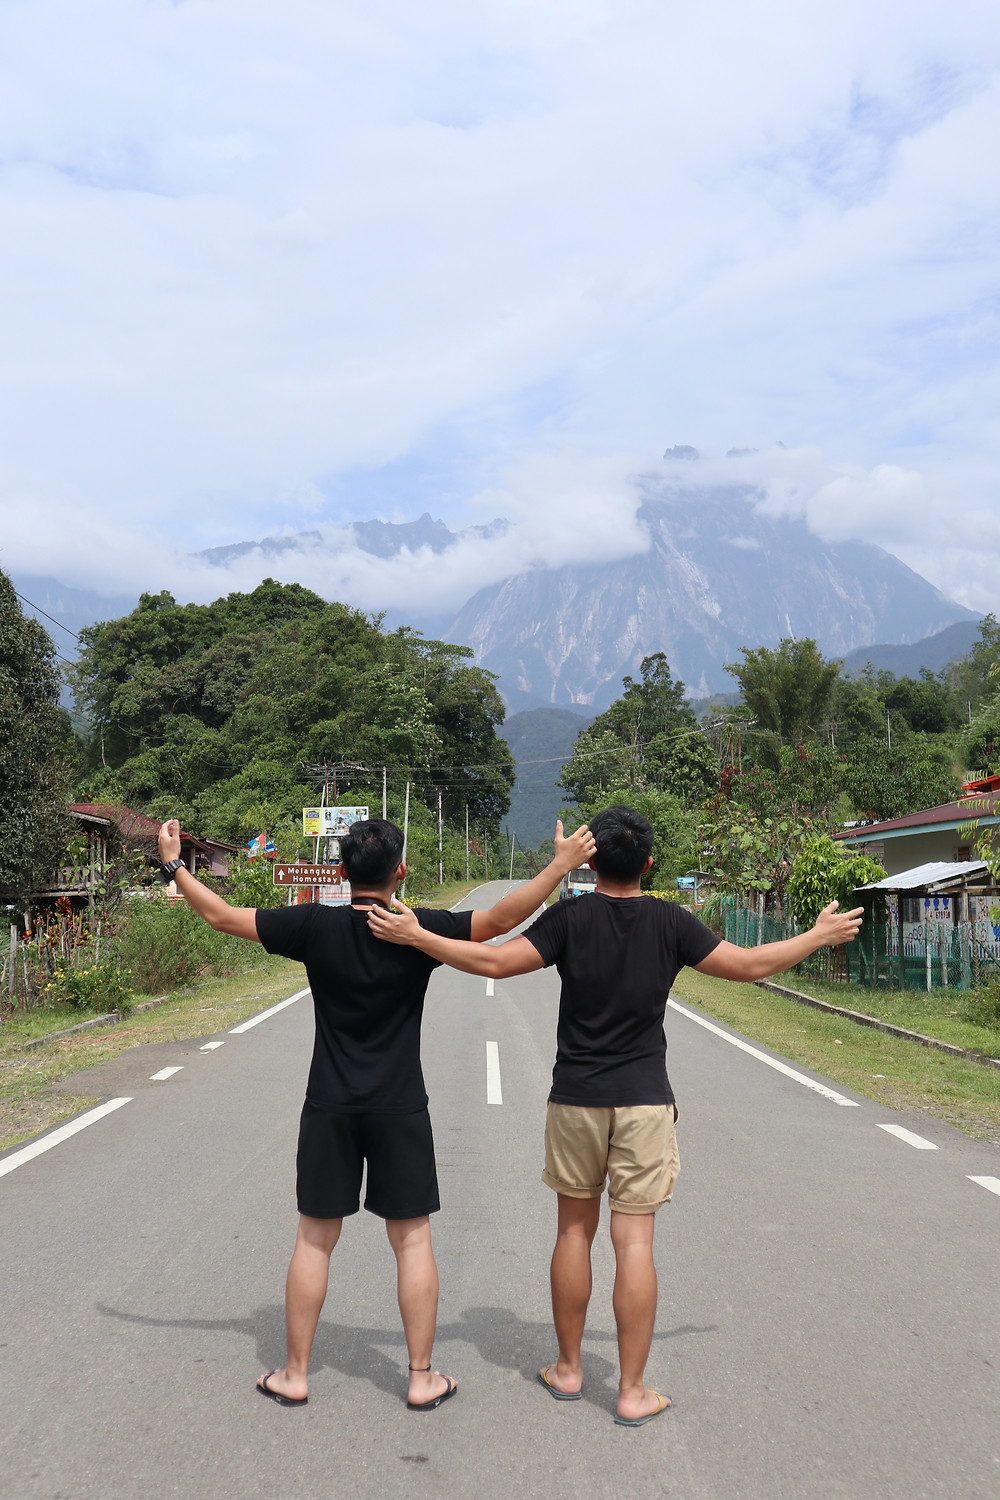 polumpung-melangkap-campsite-with-mount-kinabalu-view-on-the-road